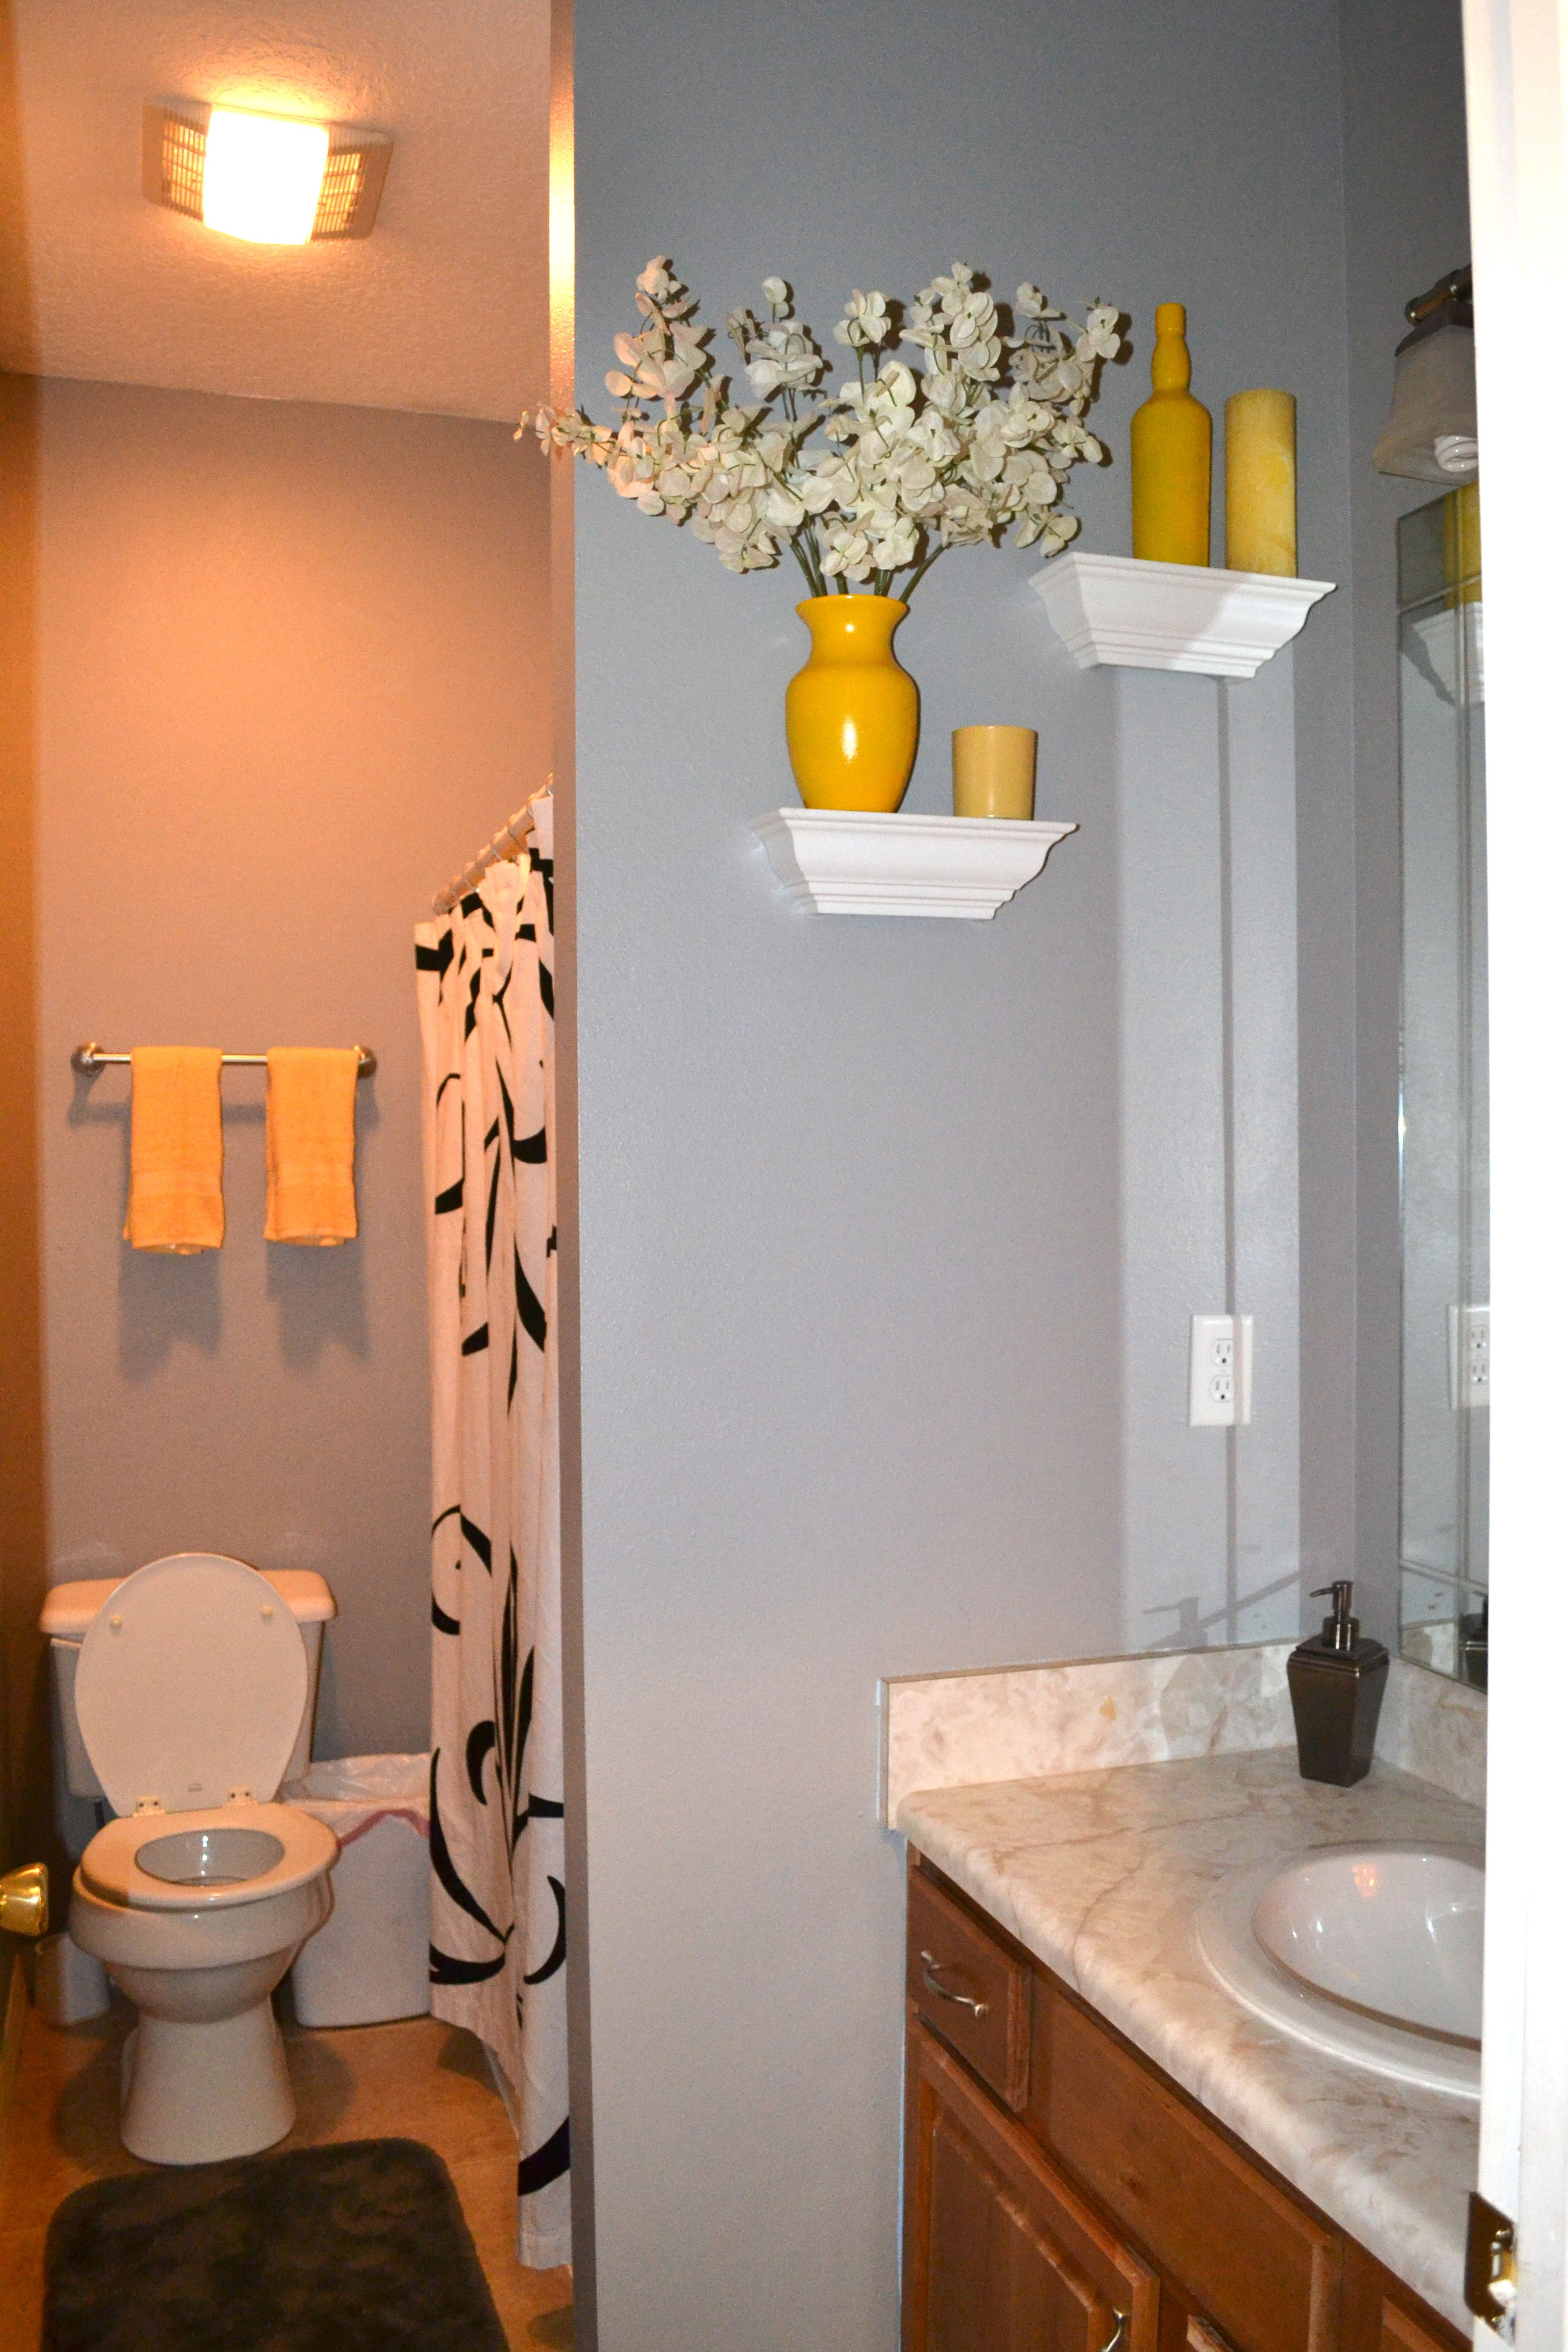 Gray and yellow bathroom color ideas - My Newly Decorated Gray And Yellow Bathroom Shower Curtain Soap Pump And Rugs